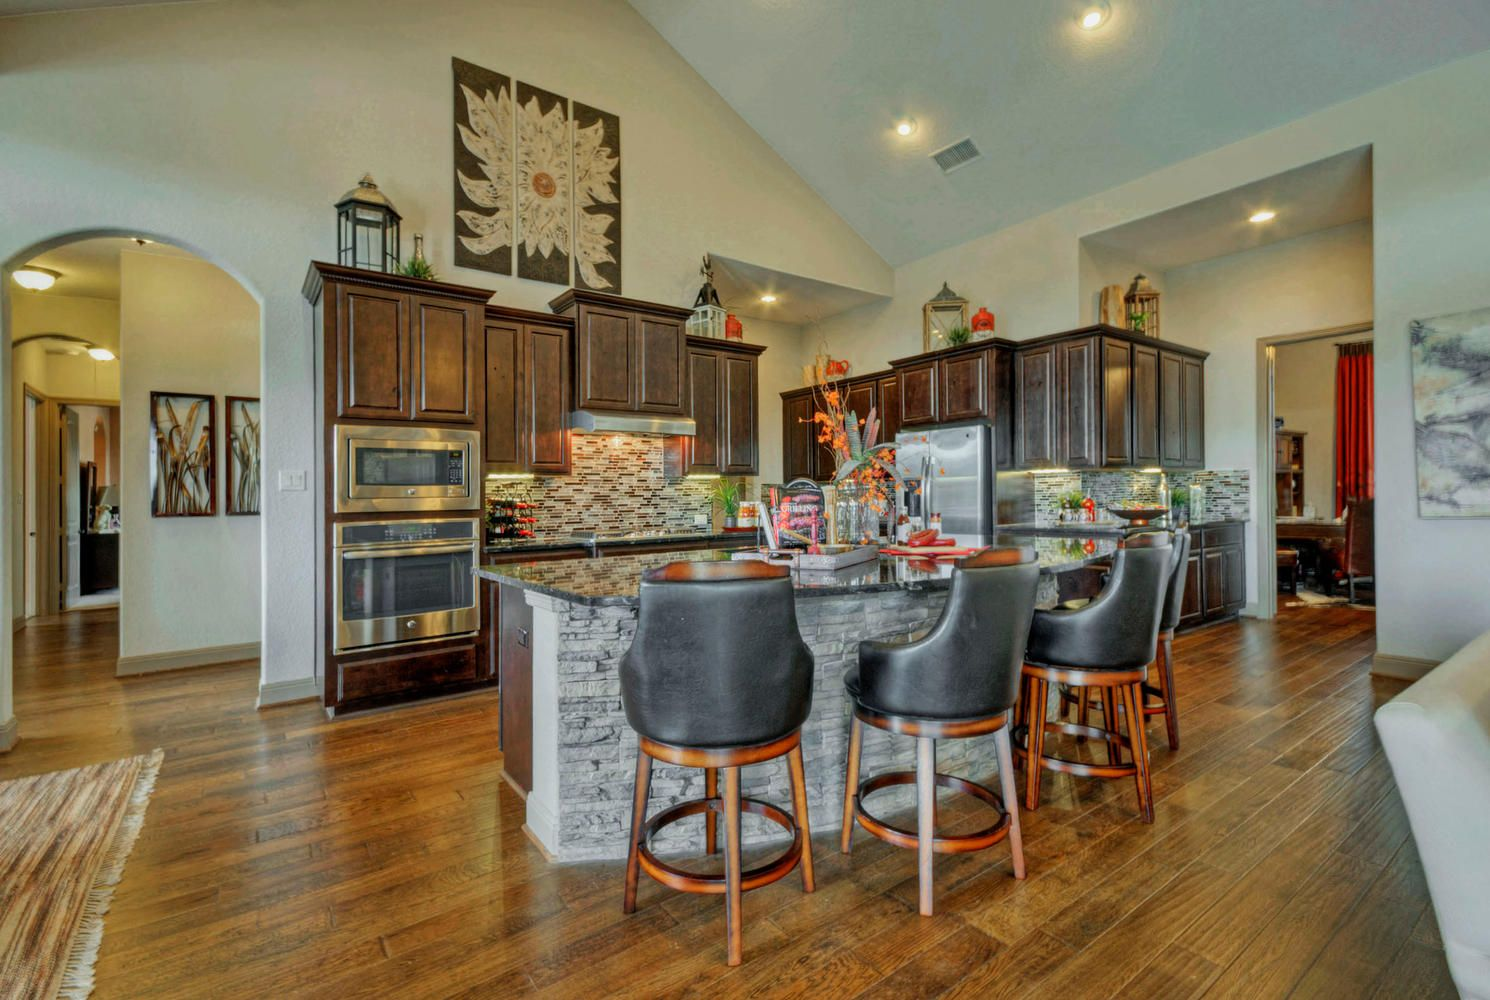 Delicieux Chesmar Homes And The Woodlands At Garden Ridge Has This Kitchen! Come See.